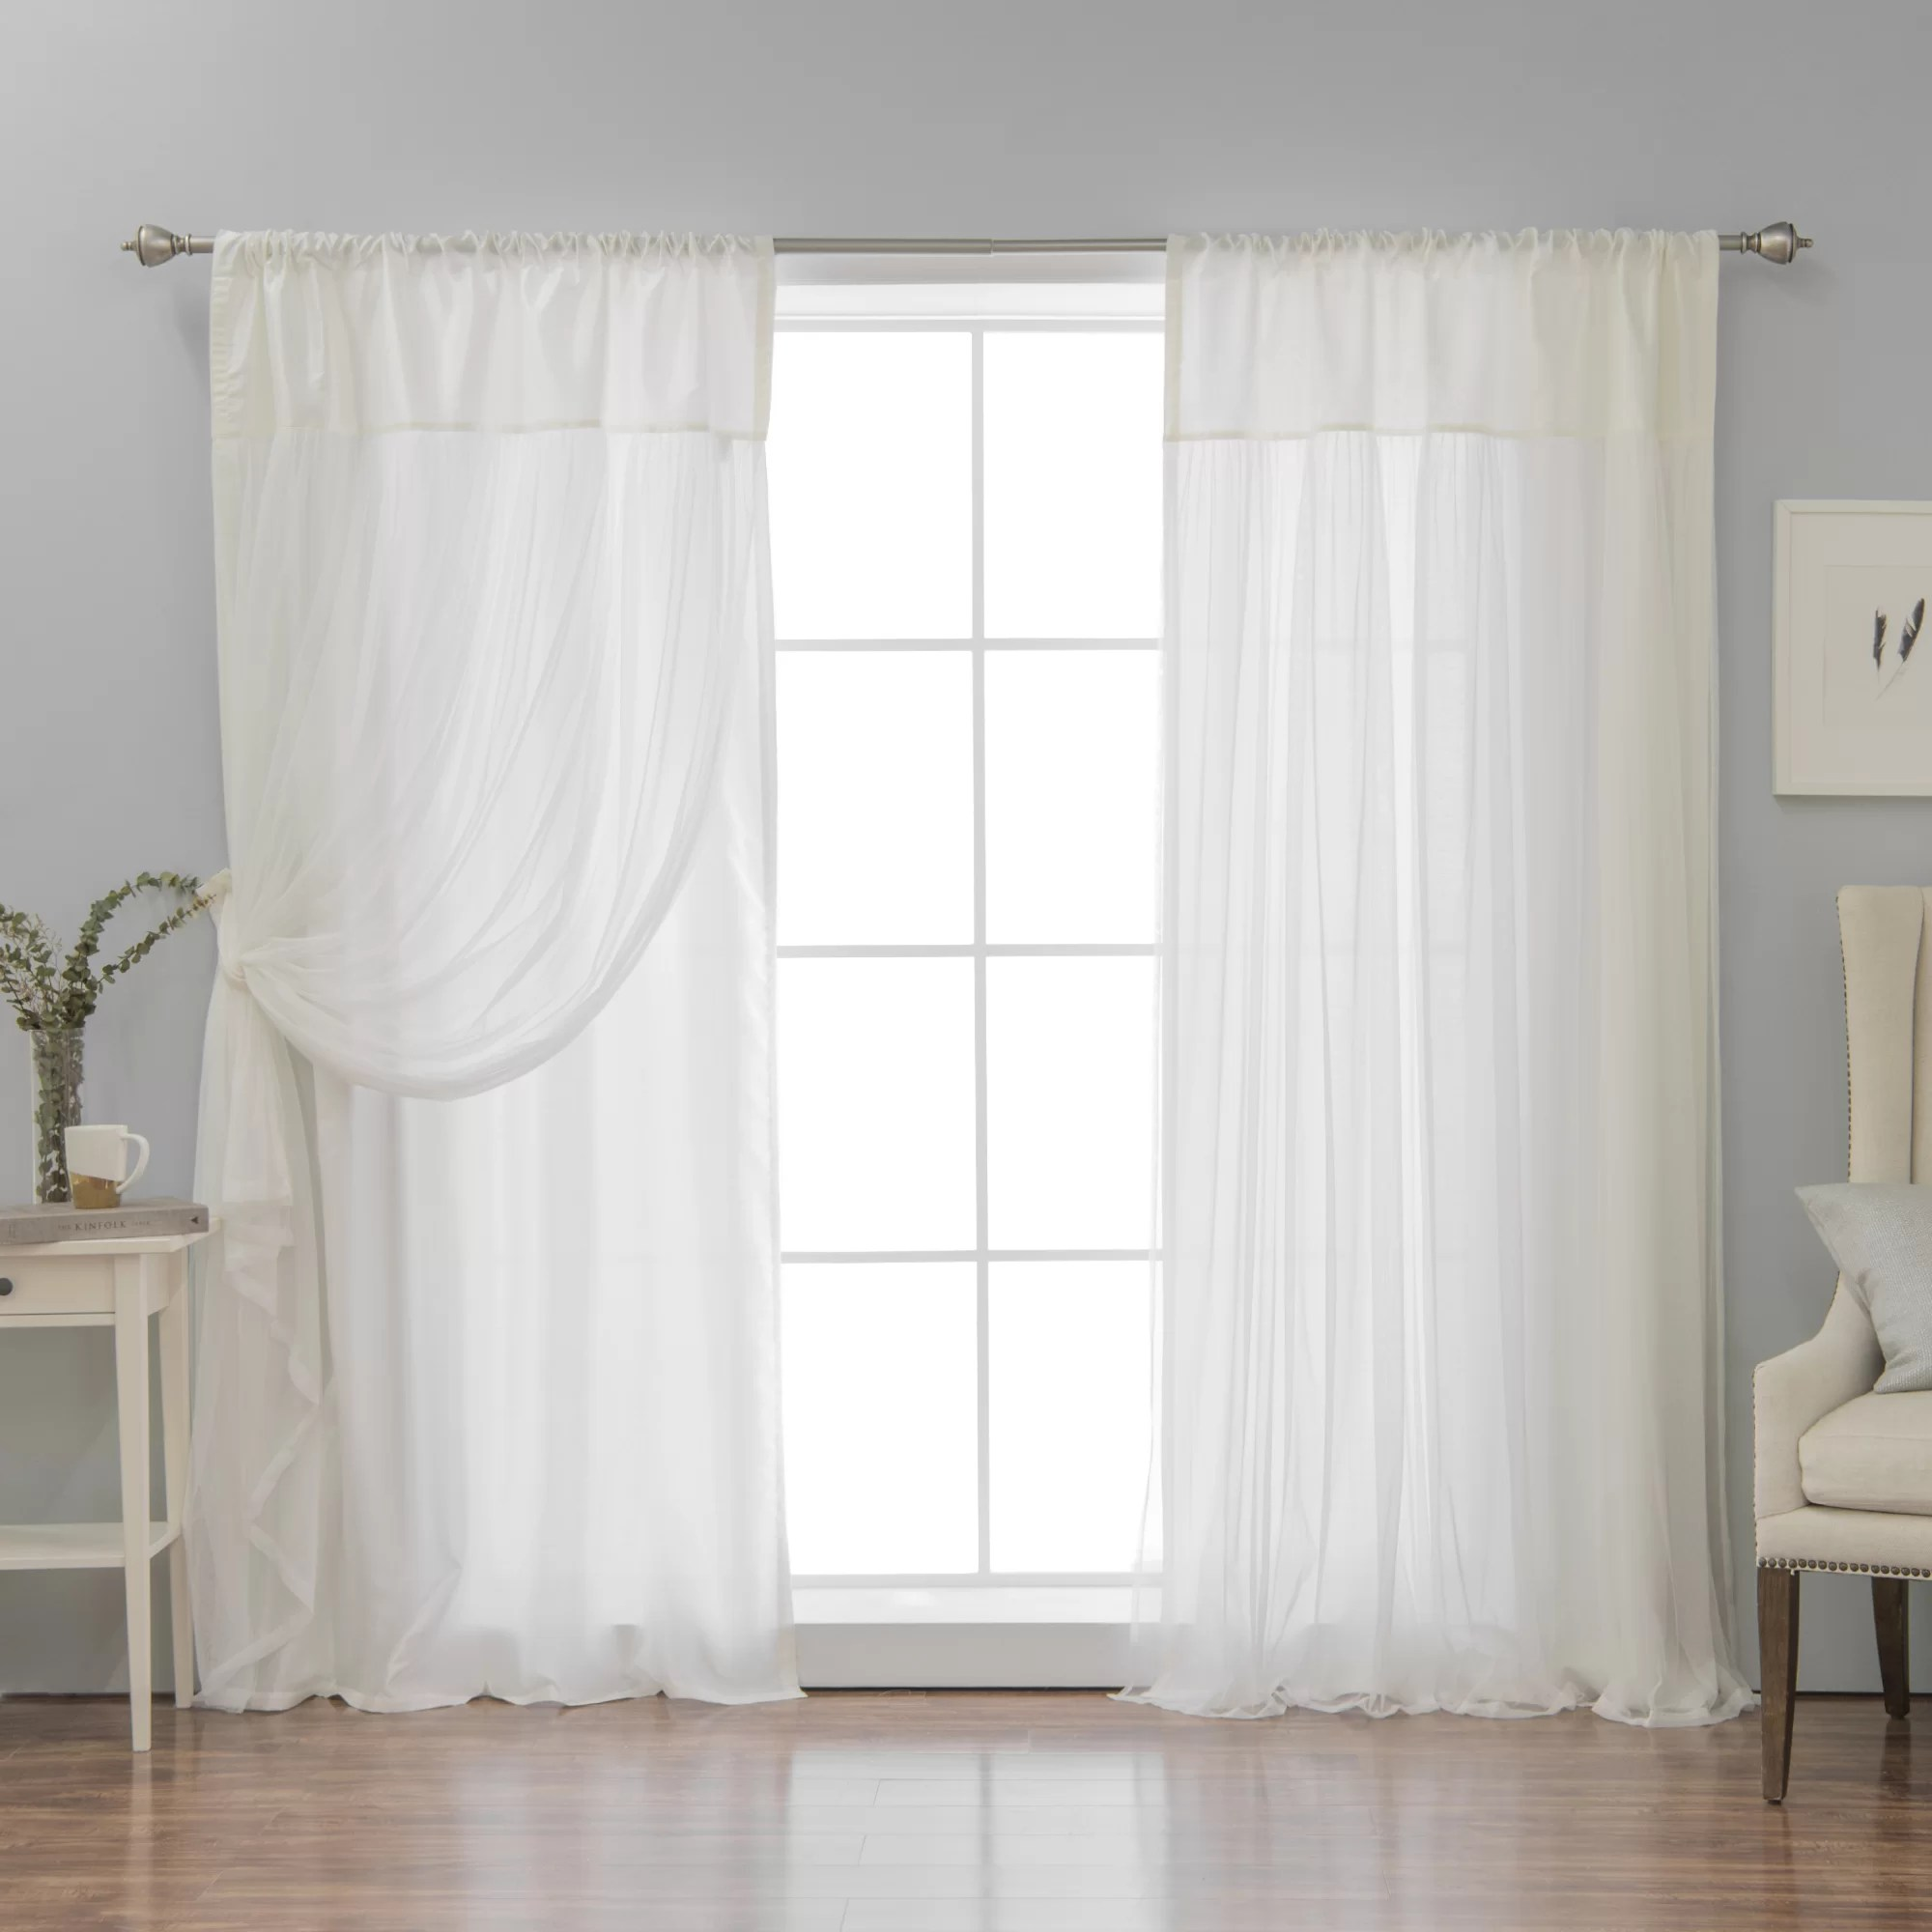 Faux Silk Curtains Ariella Faux Silk Tulle Overlay Solid Semi Sheer Thermal Rod Pocket Curtain Panels